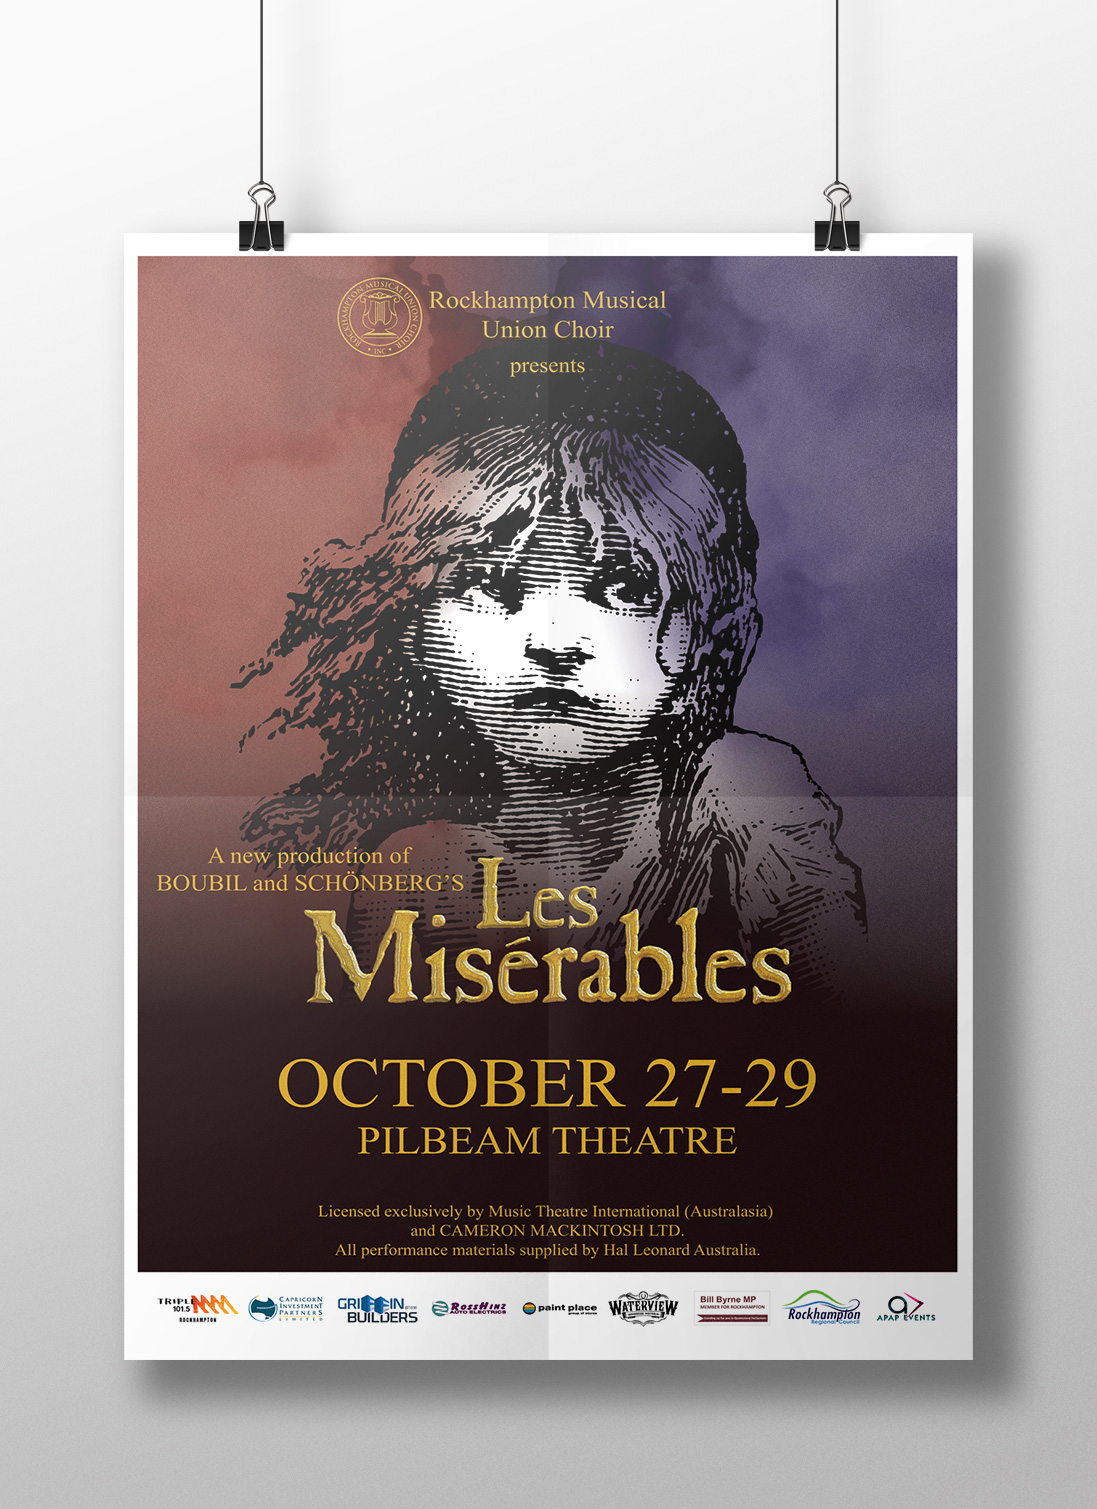 APAP Events Event Management and Graphic Design Rockhampton Les Miserable Poster